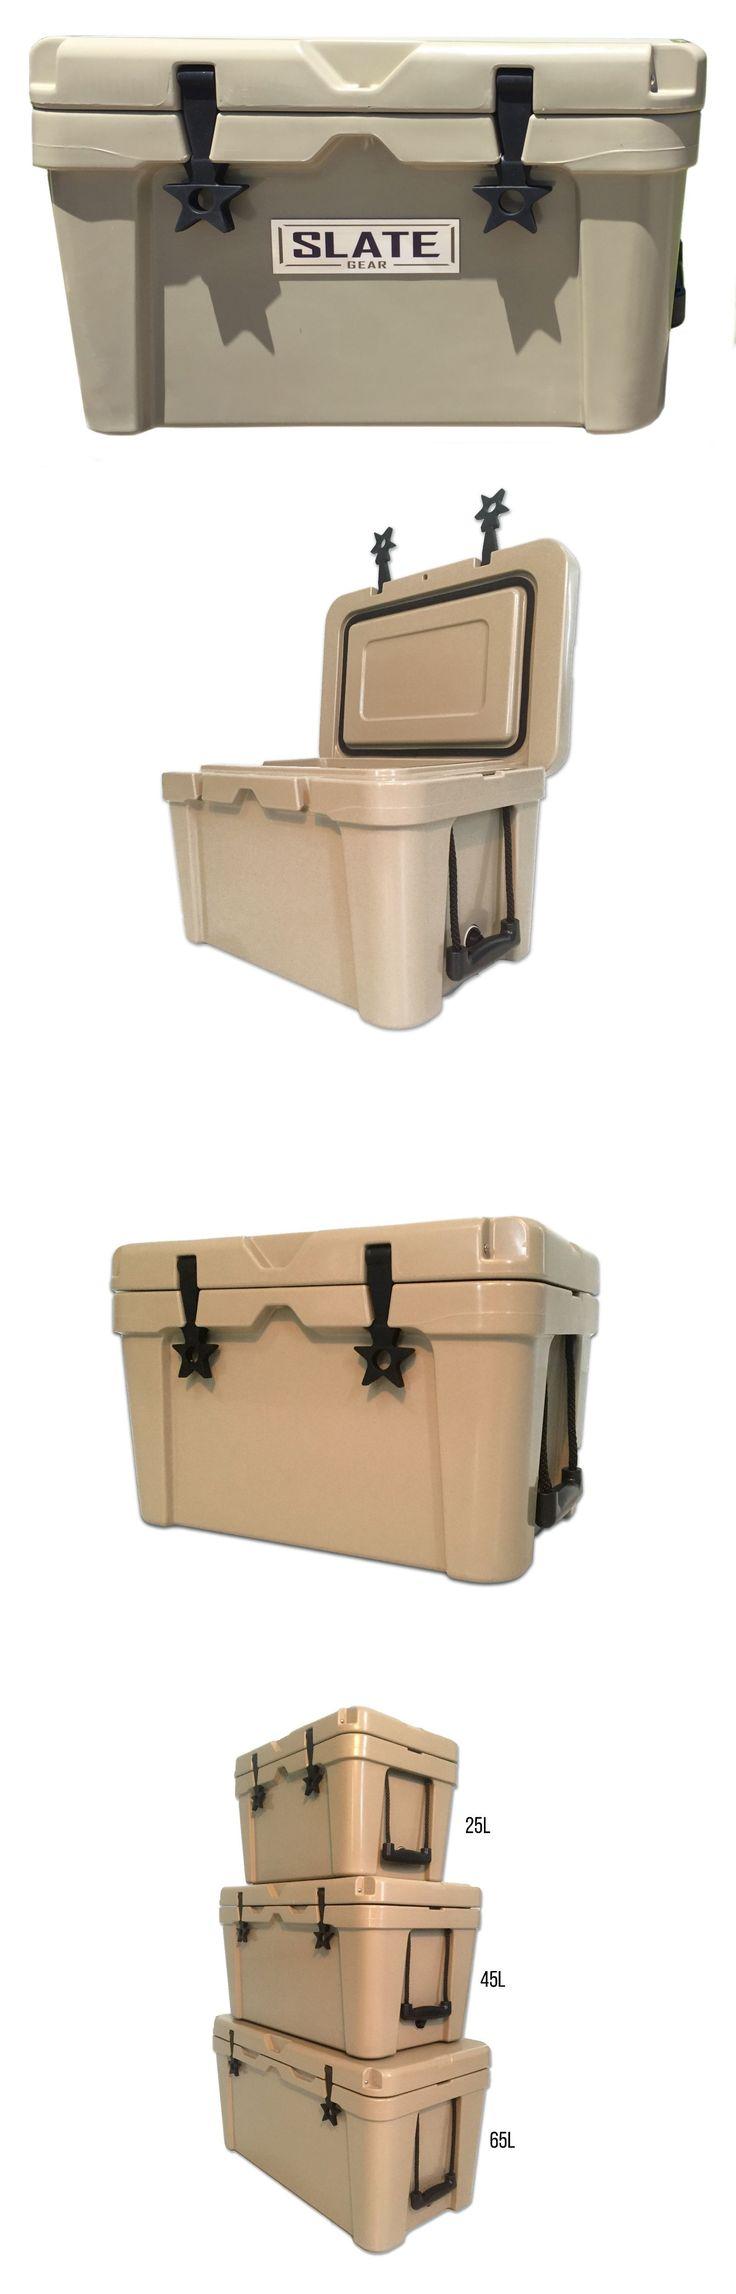 Ice Chests and Coolers 79691: New - Tan 65L Rotomolded Coolers - Yeti, Rtic Style Cooler - Slate Gear Cooler -> BUY IT NOW ONLY: $209 on eBay!